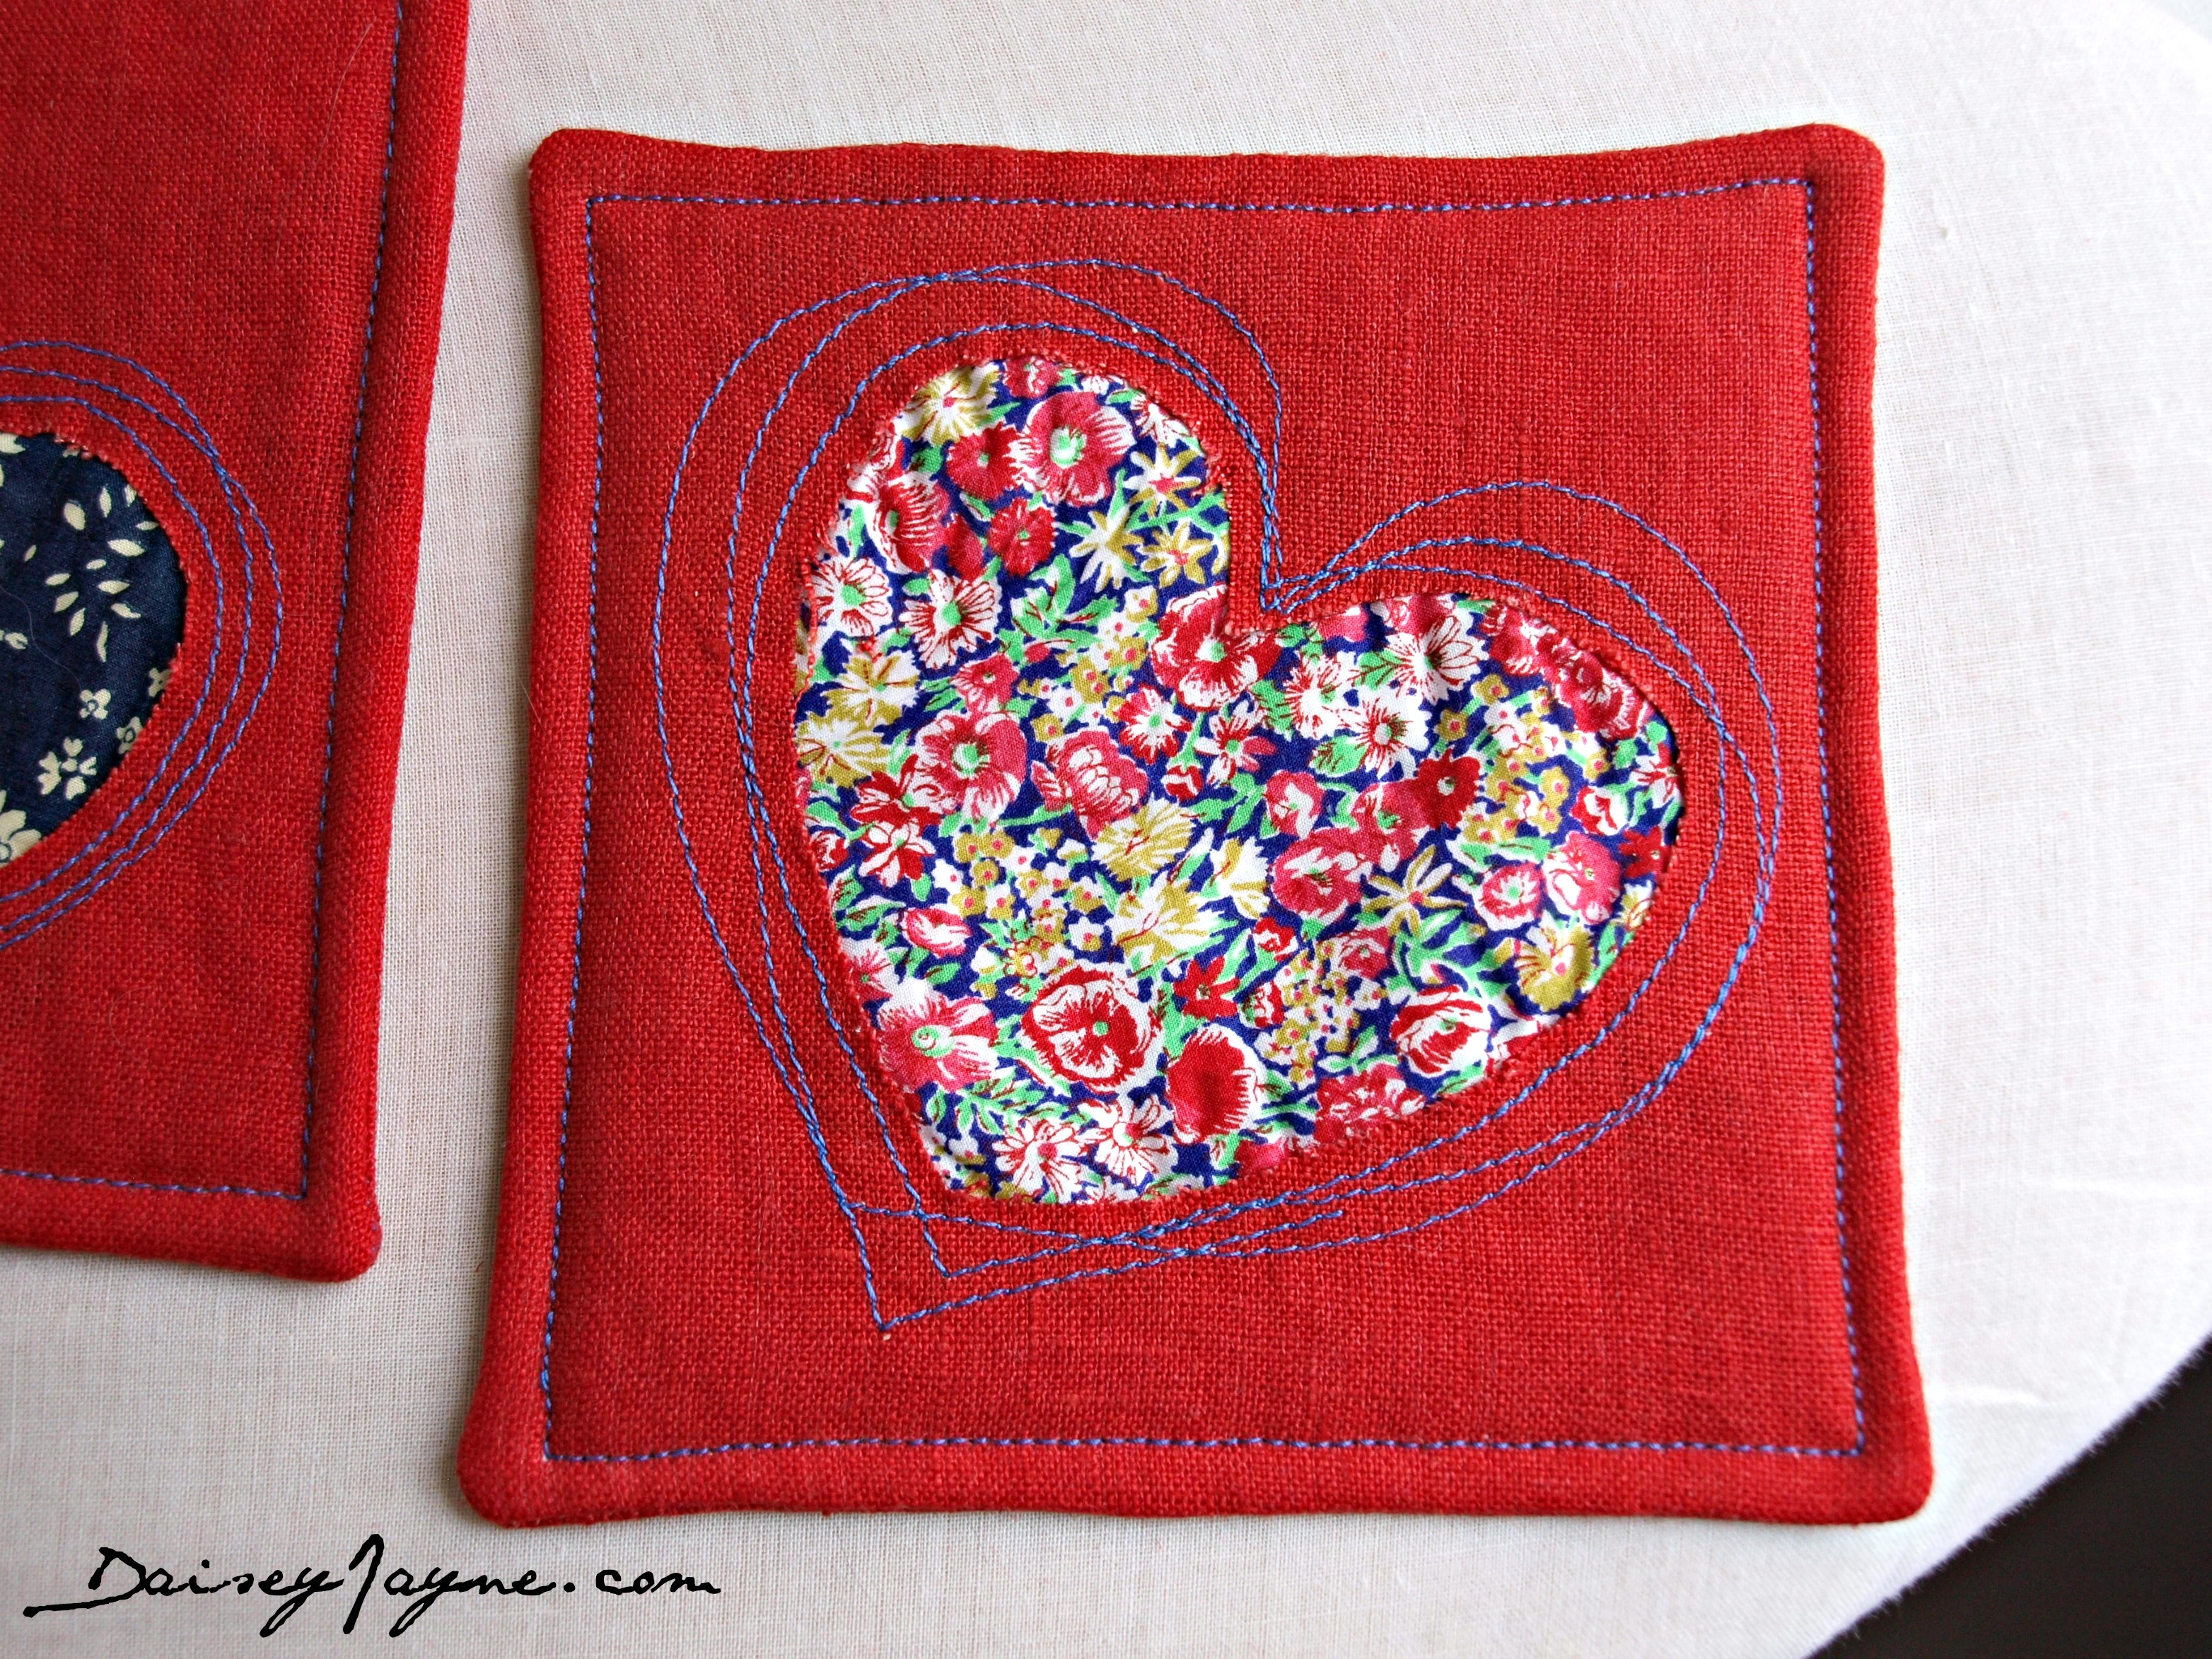 Reverse applique coasters, I just love this technique! - Daisey Jayne